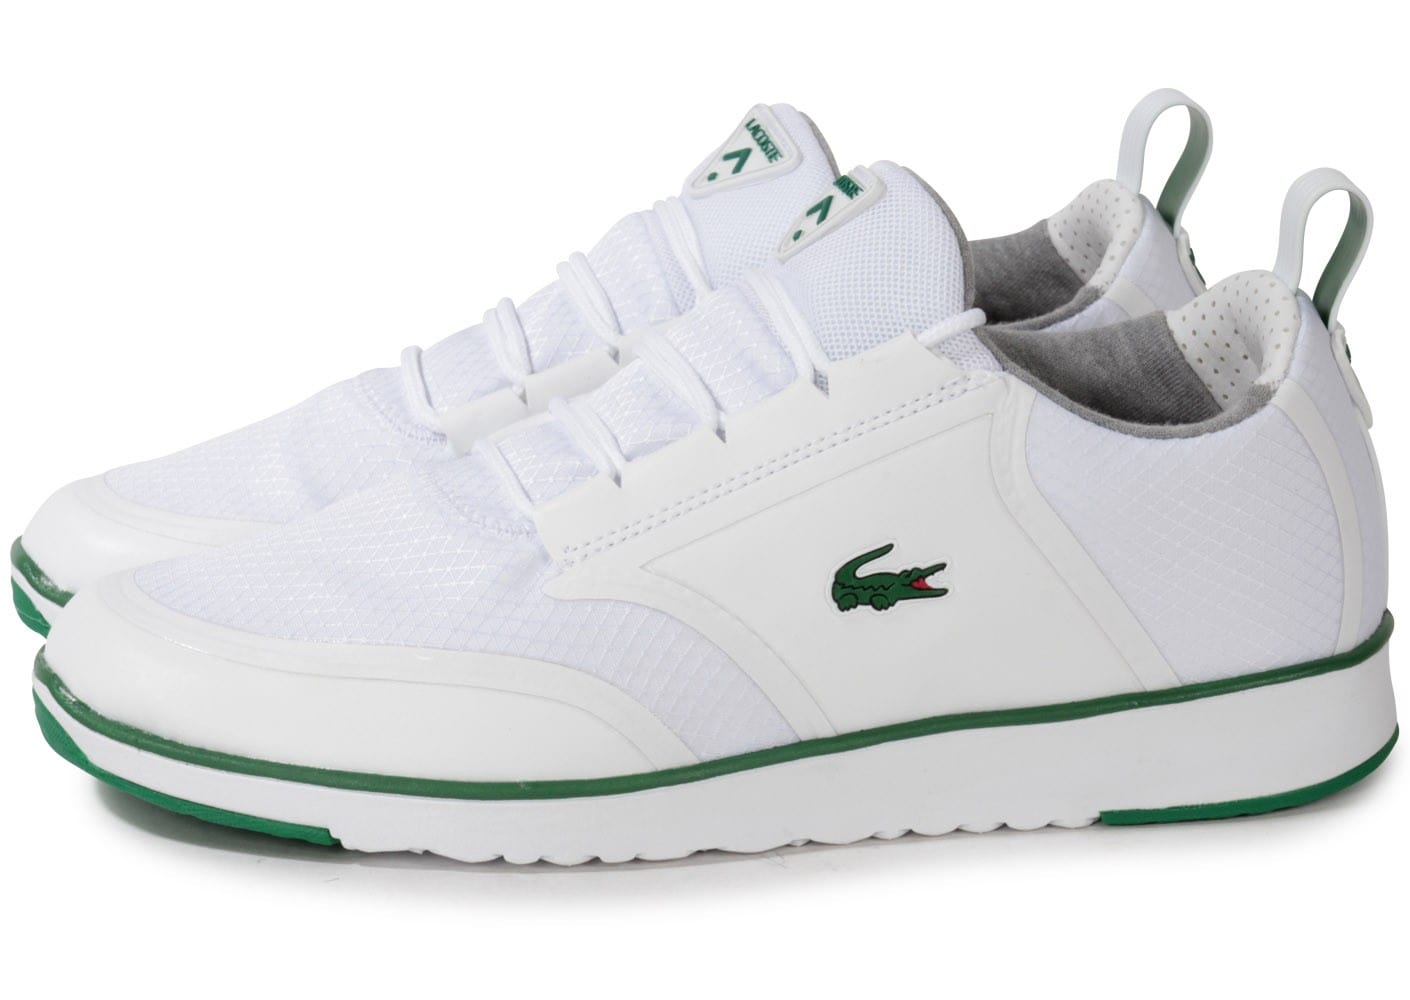 lacoste light lt12 blanche chaussures homme chausport. Black Bedroom Furniture Sets. Home Design Ideas